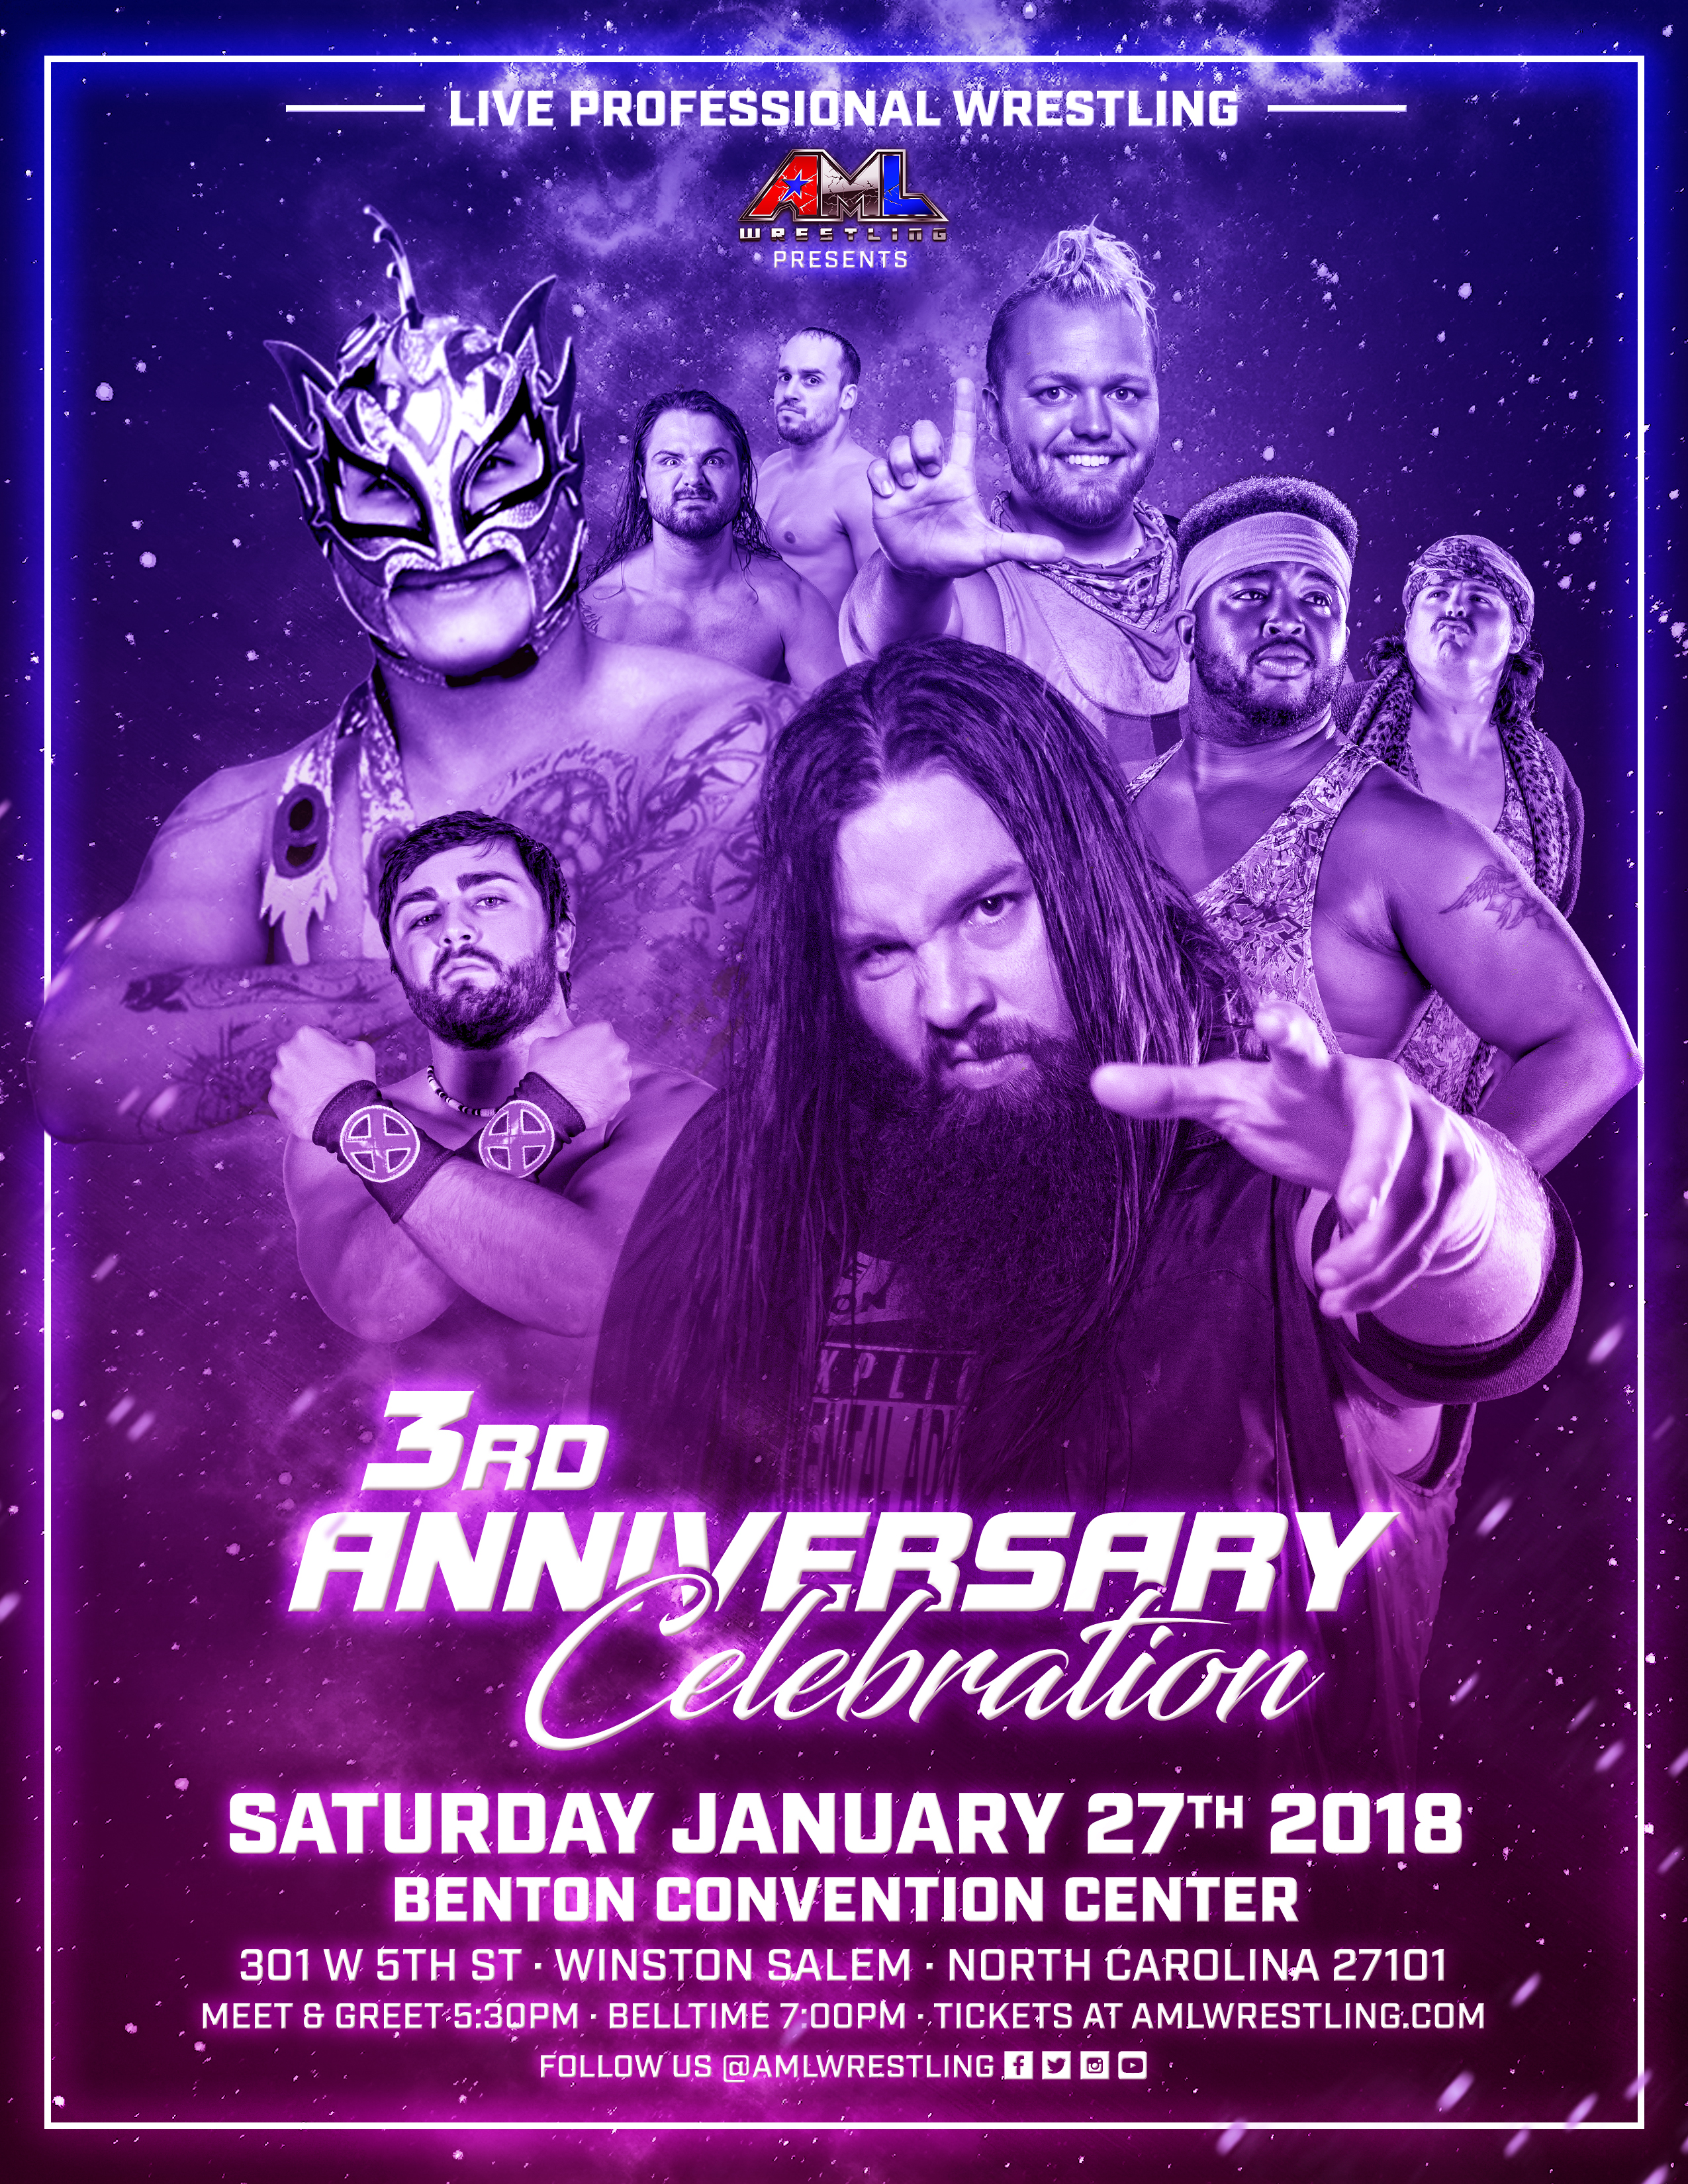 Family-Friendly Pro Wrestling Returns To Winston-Salem, NC For A TV Taping